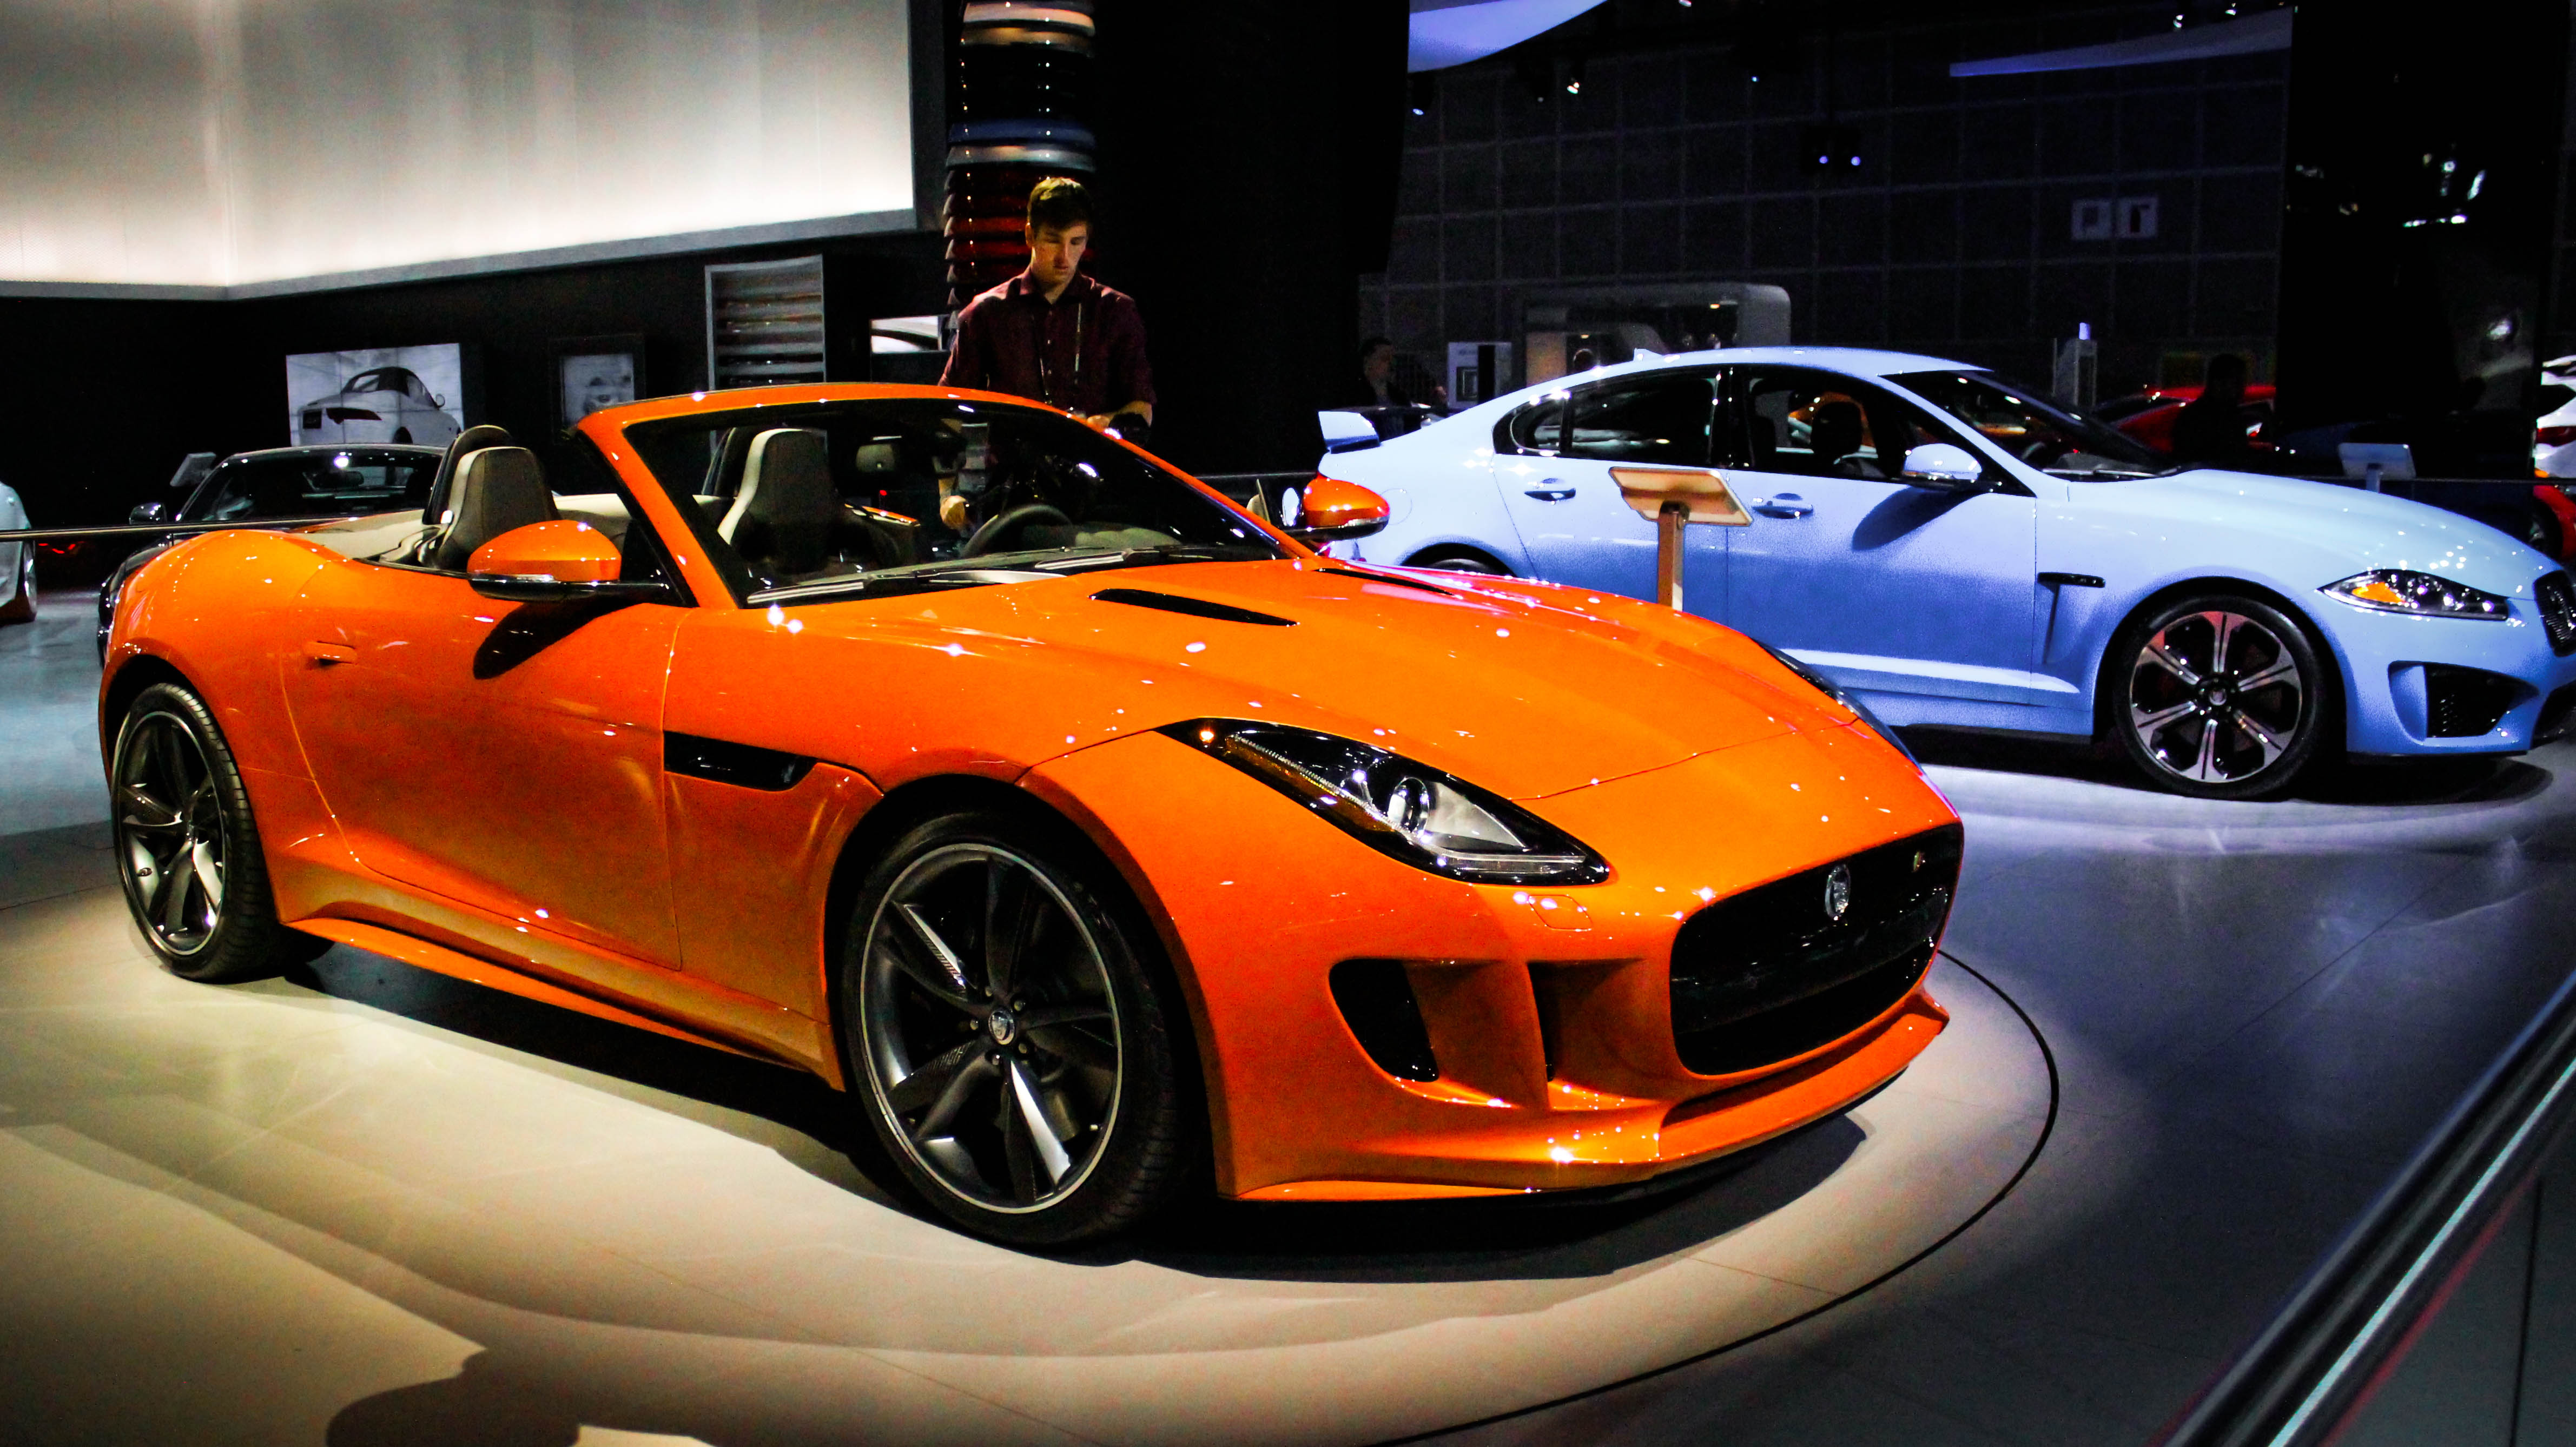 I First Laid Eyes On The New Jaguar F Type Back In November At The 2012 LA  Auto Show. It Was Towards The End Of The Day And I Was Getting Tired.